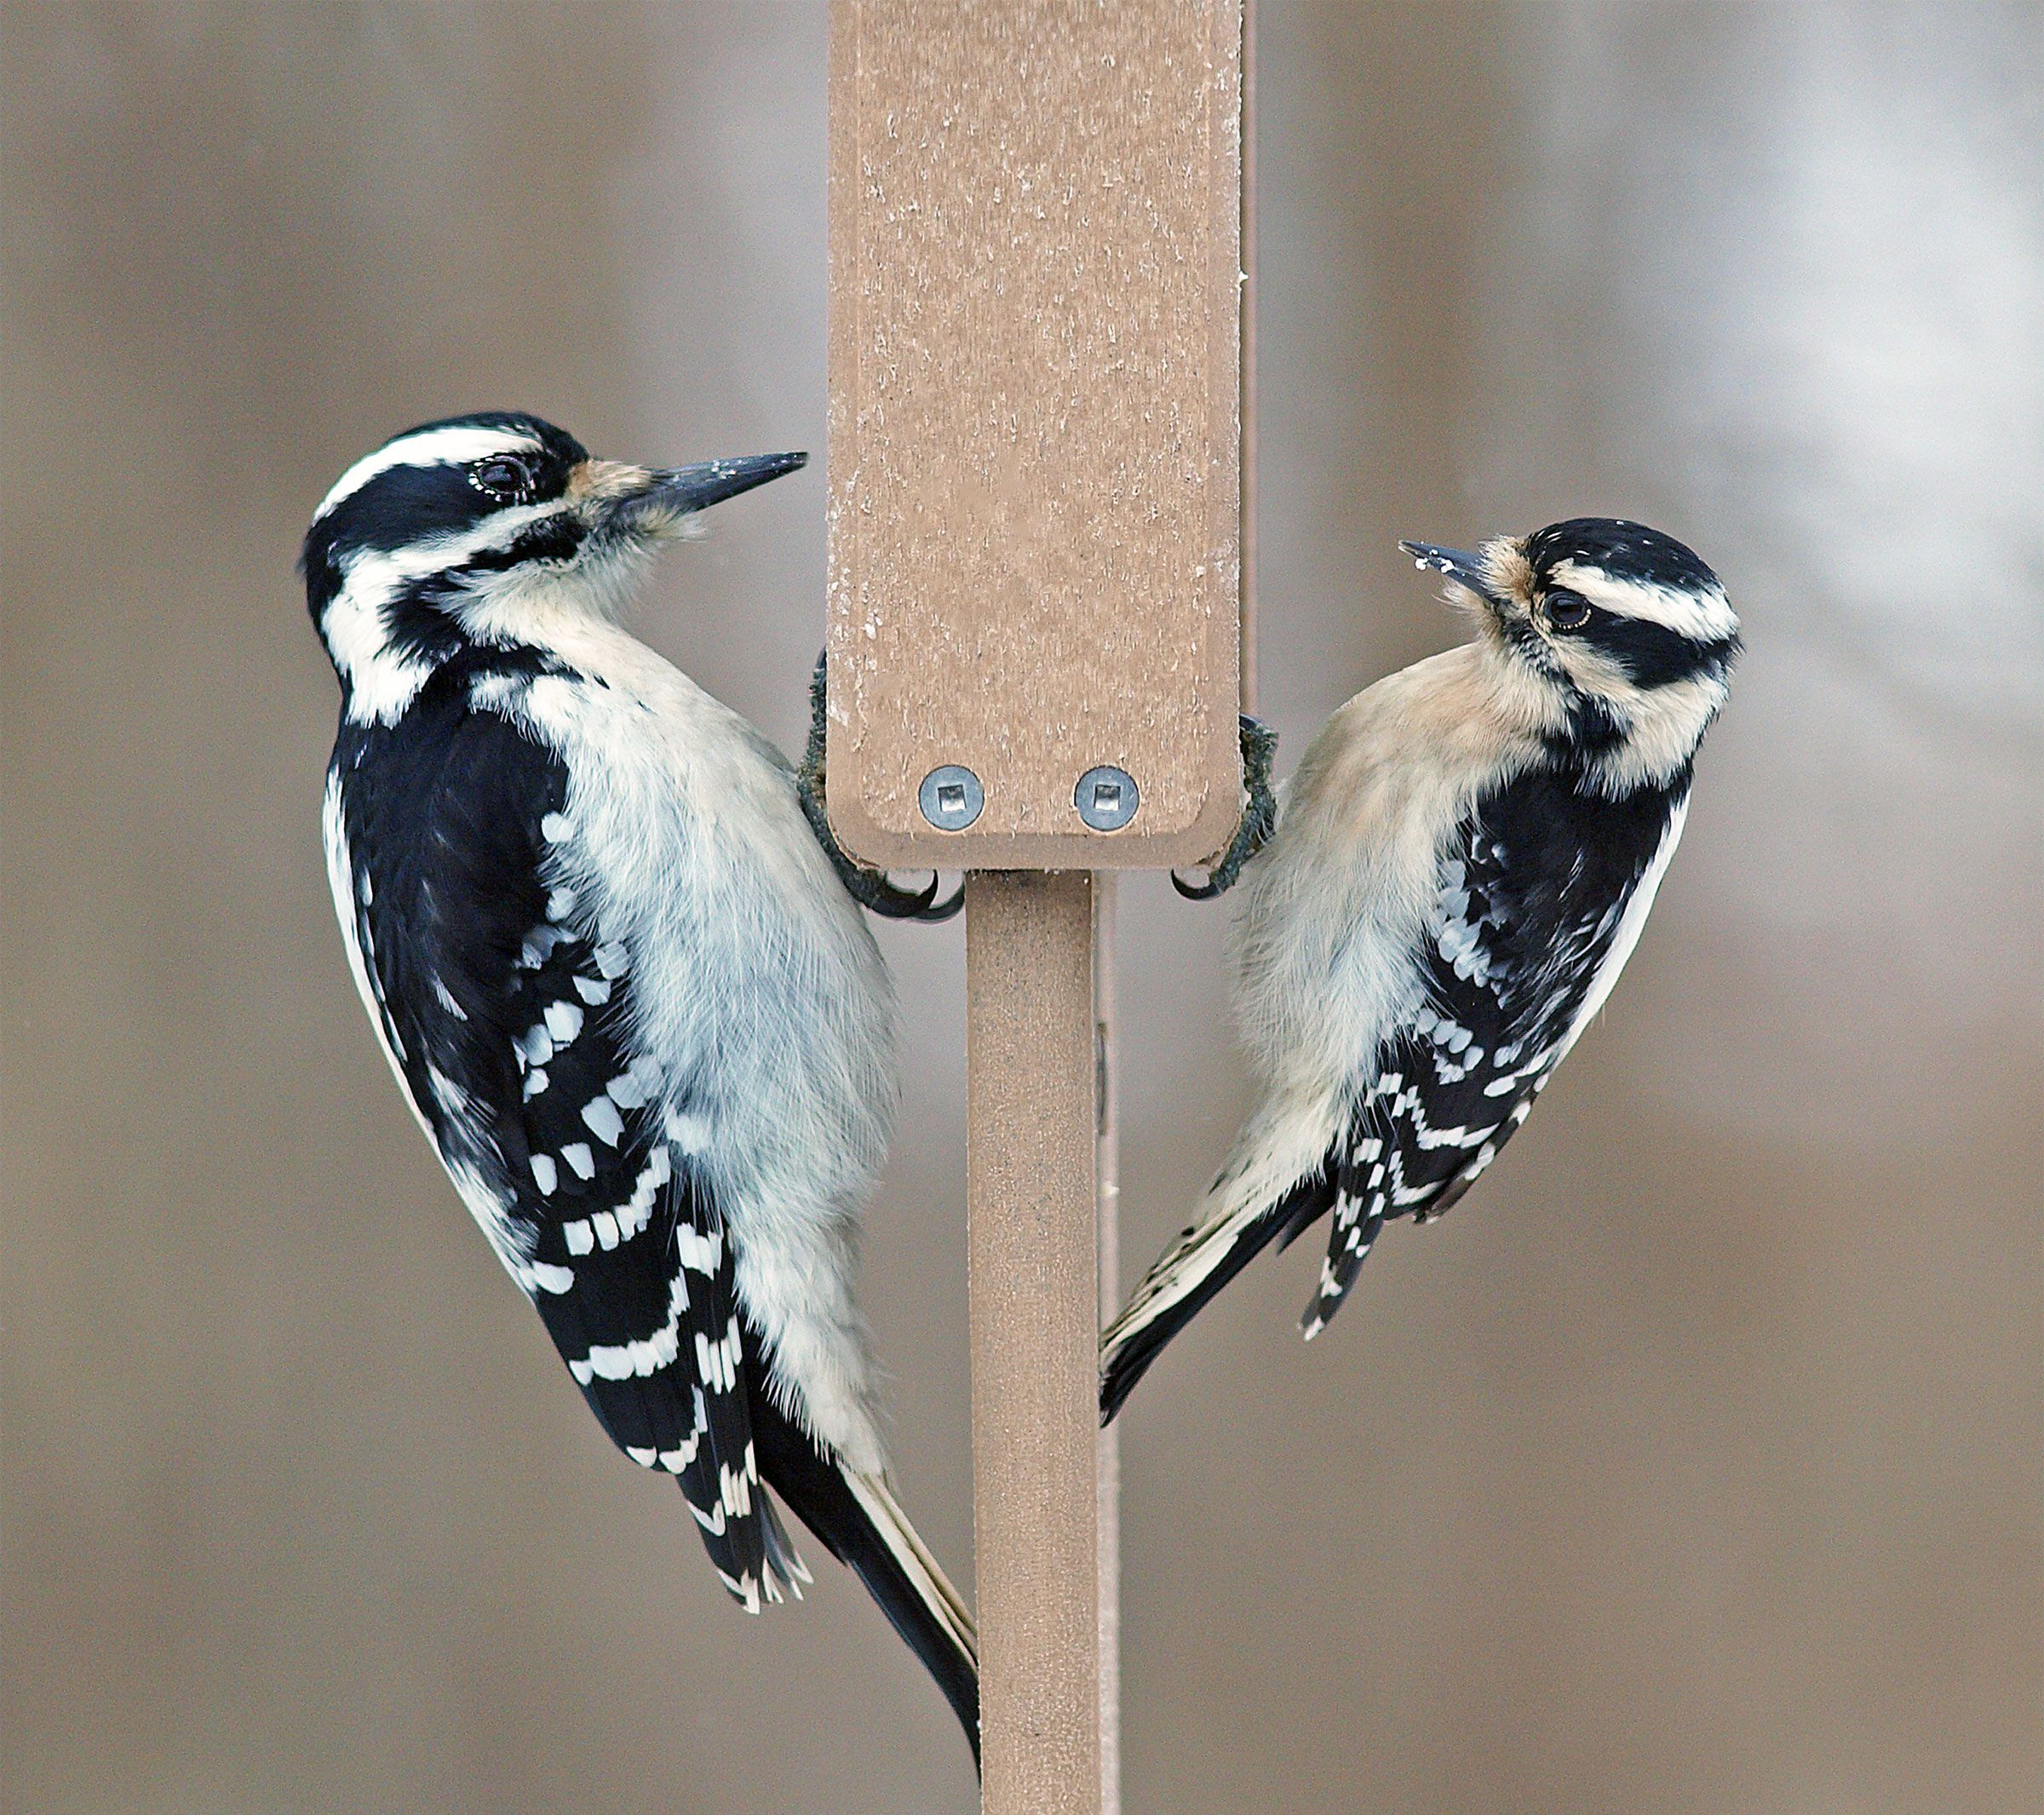 There S A New Theory For Why Downy And Hairy Woodpeckers Look So